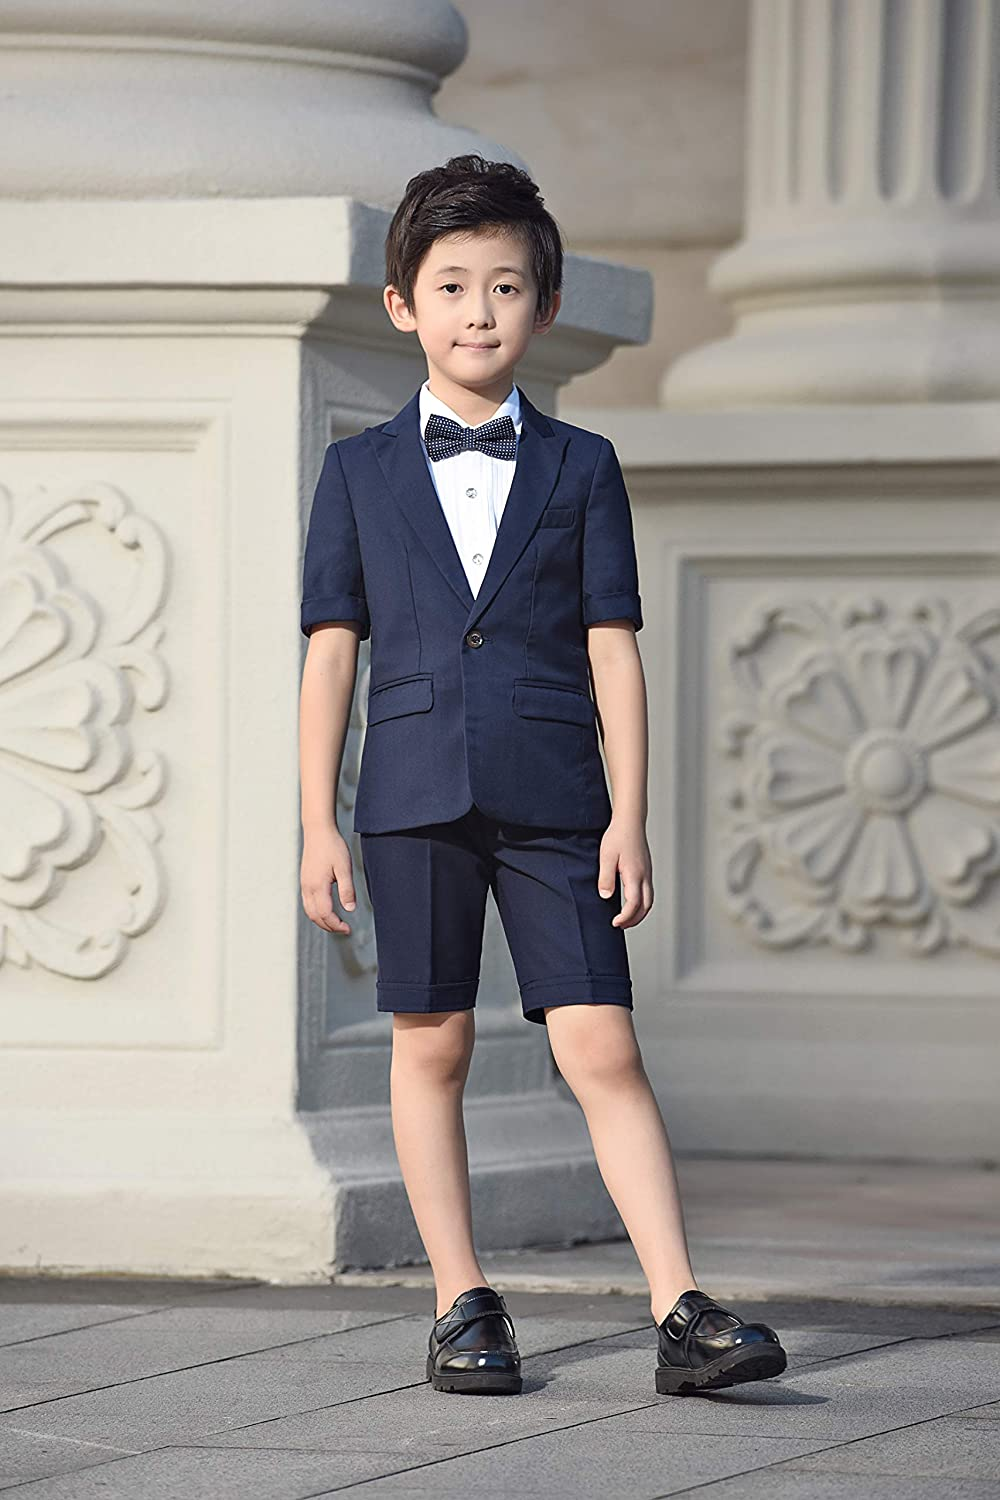 Hibabe Suits for Boyss 5 Sets Slim Fit Style by Handed Sizes 2T-14